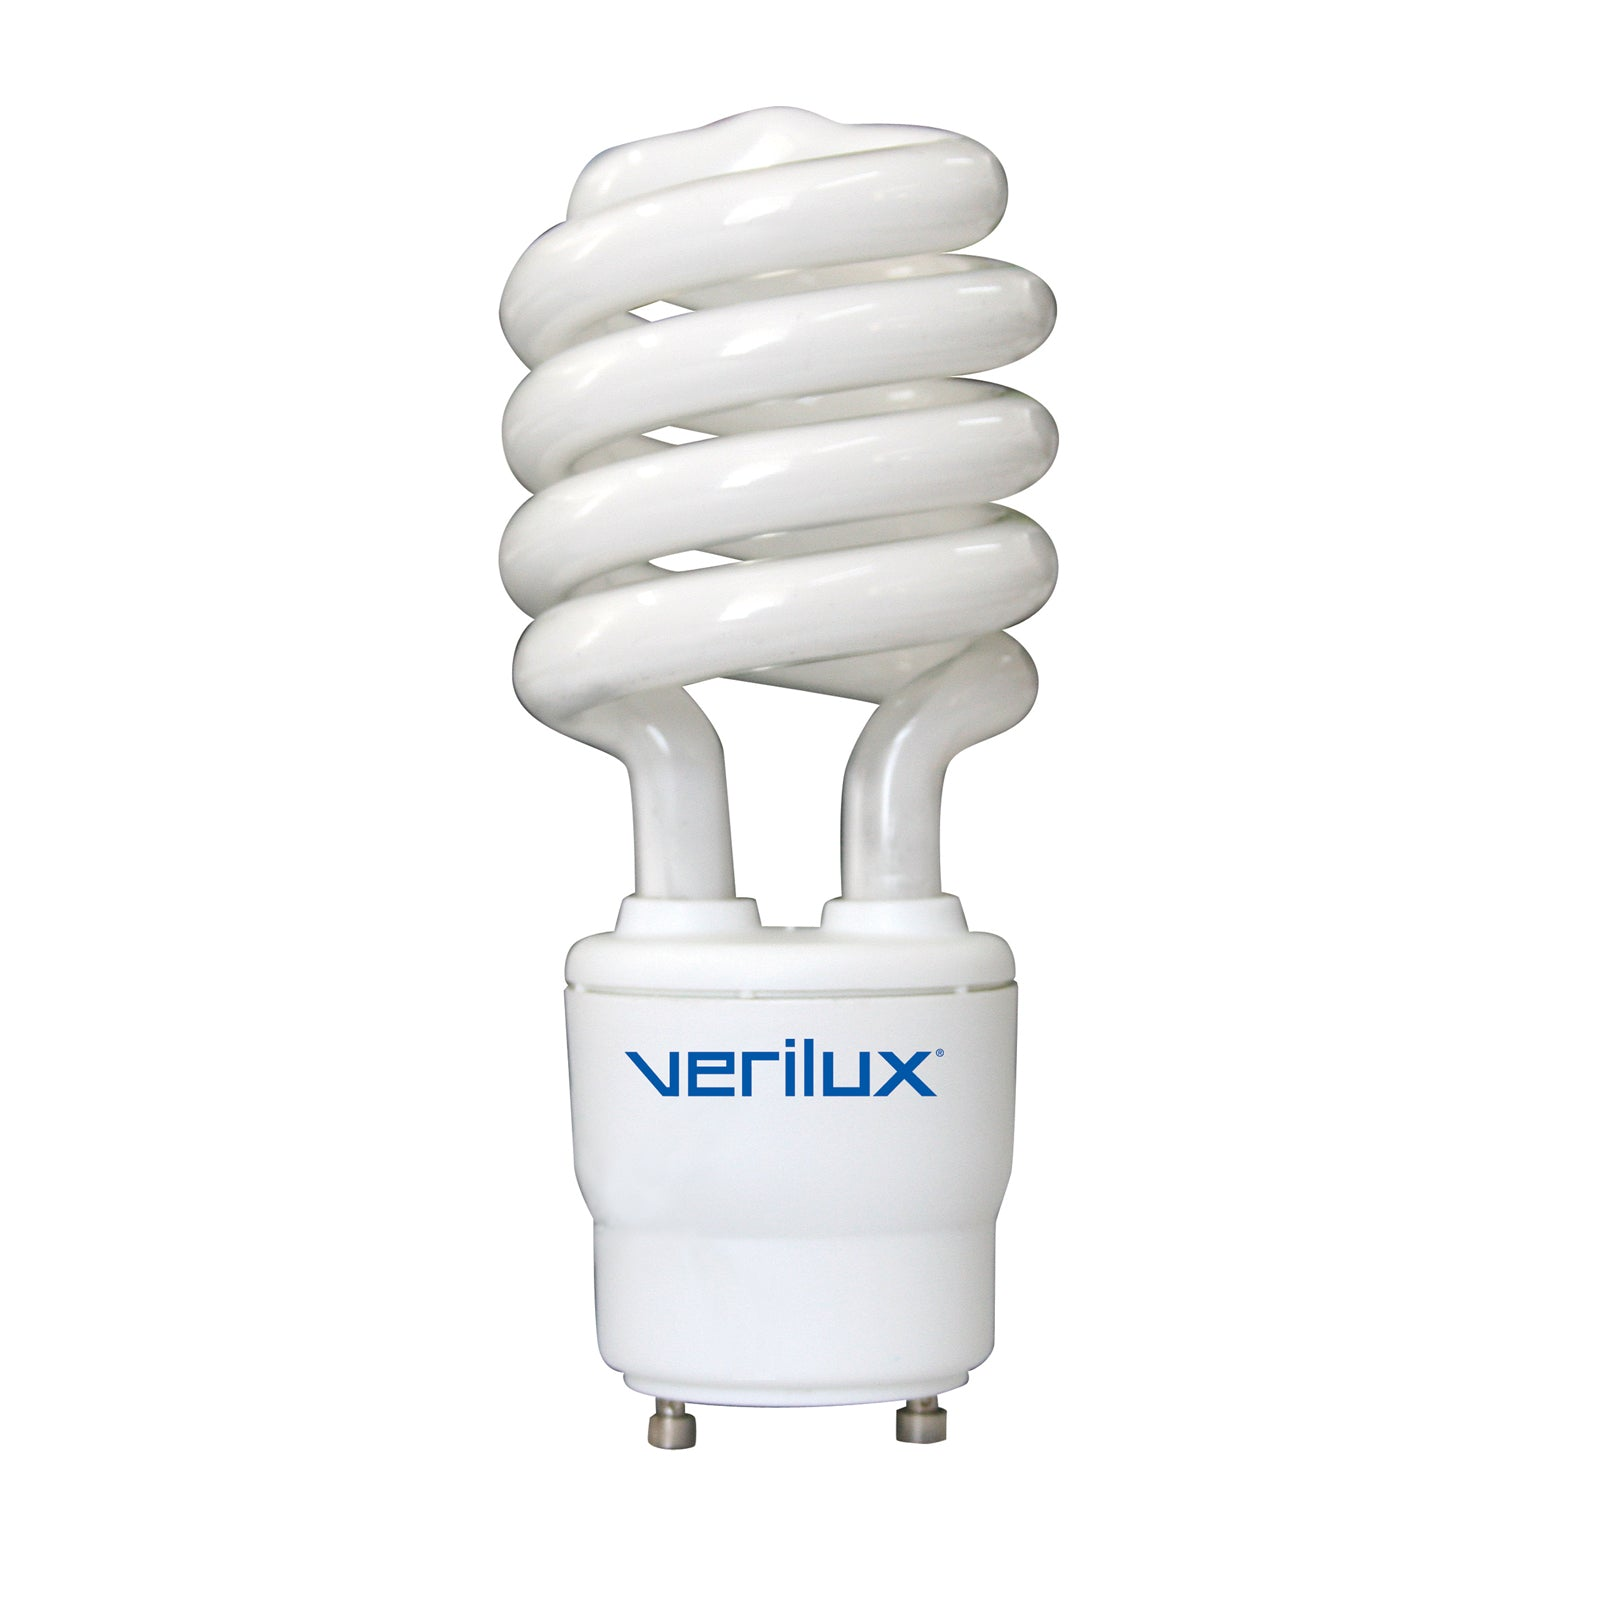 Genuine 26W Verilux Desk & Floor Lamp Replacement Bulb CFS26GU24VLX